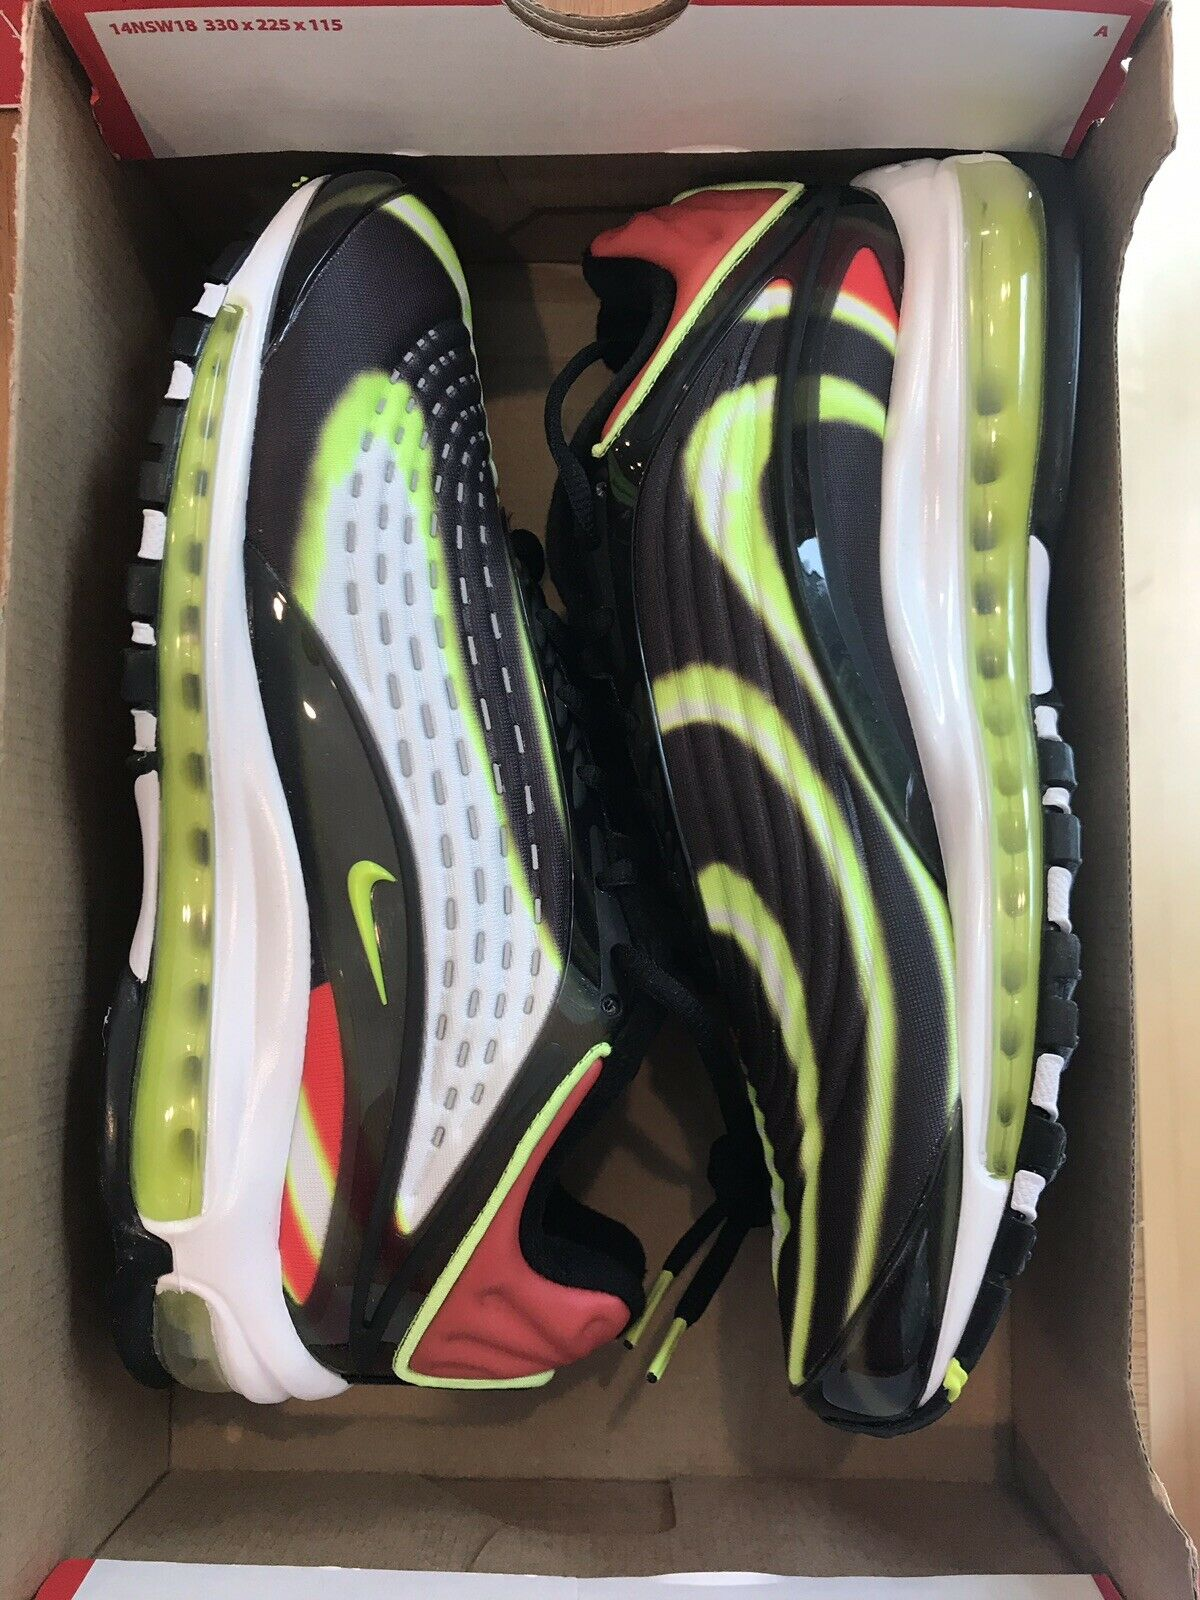 d5d99ef787 ... New Nike Men's Air Max Deluxe Black Volt-Habablack Red-White Red-White  ...